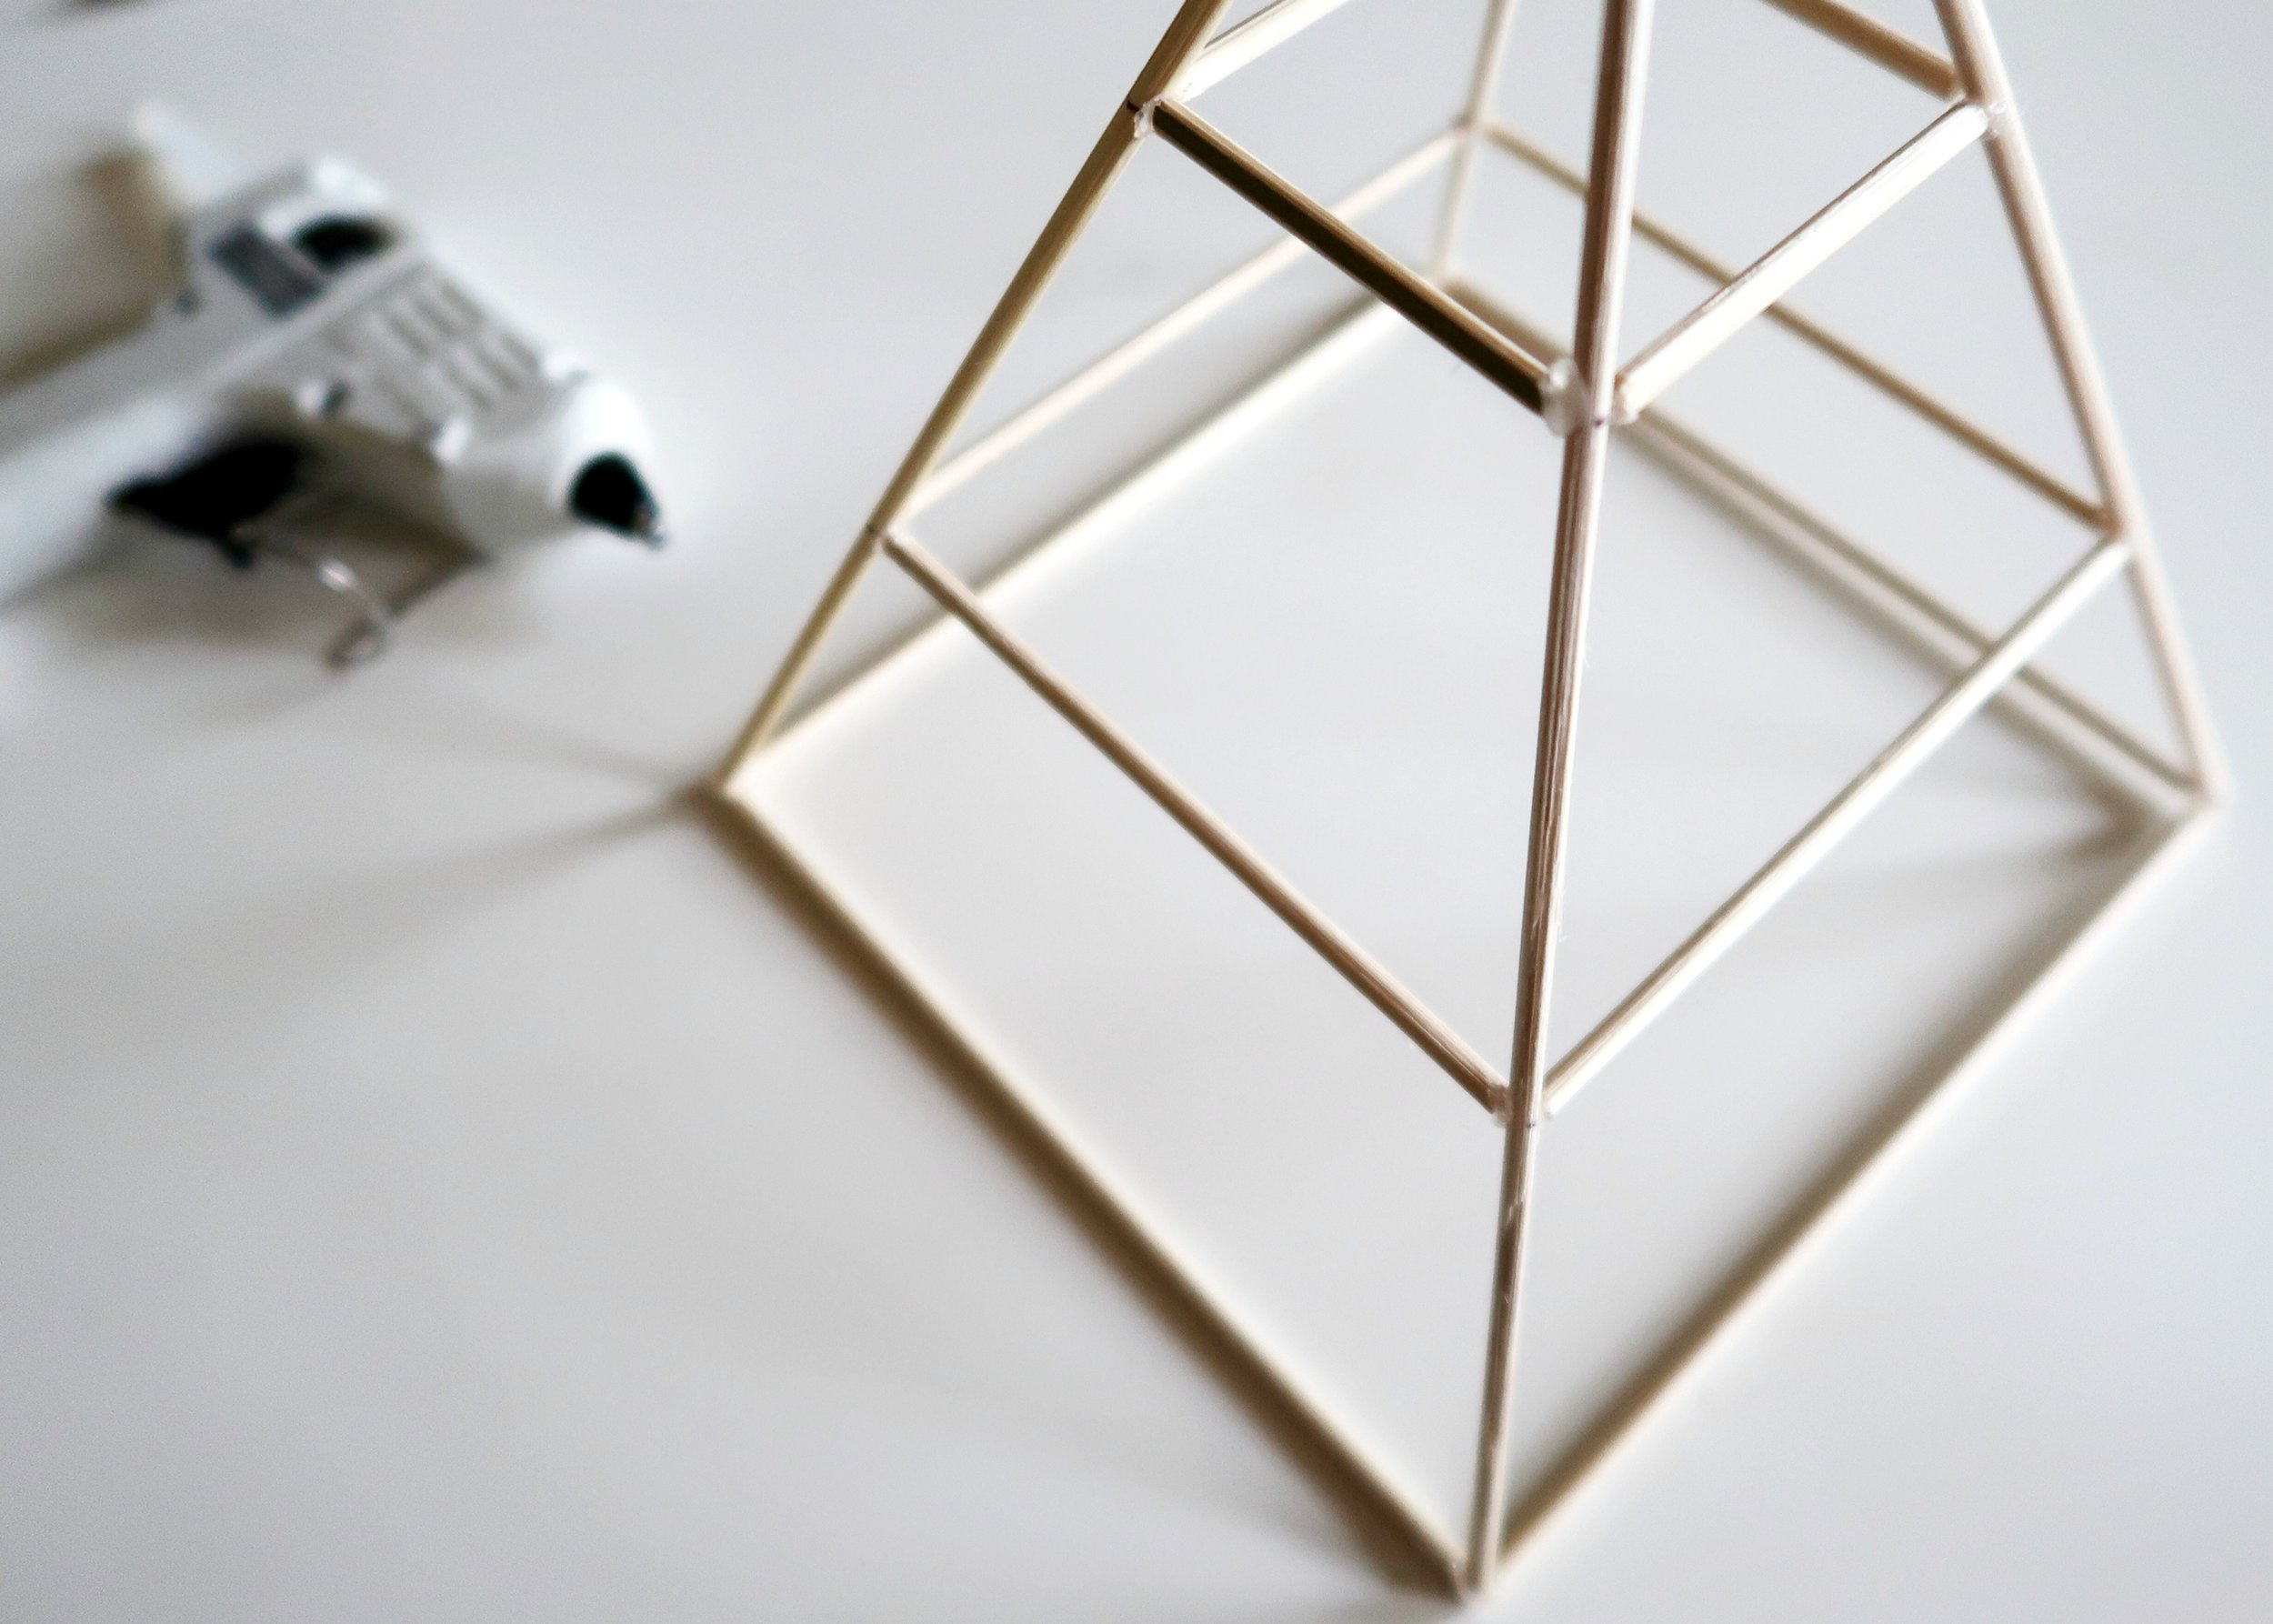 5. - Finally, take the 4.6cm lengths and glue these one at a time at the next mark along the sides of the pyramid. Once this is dry, you can leave it bare or use spray paint to give it a splash of colour.